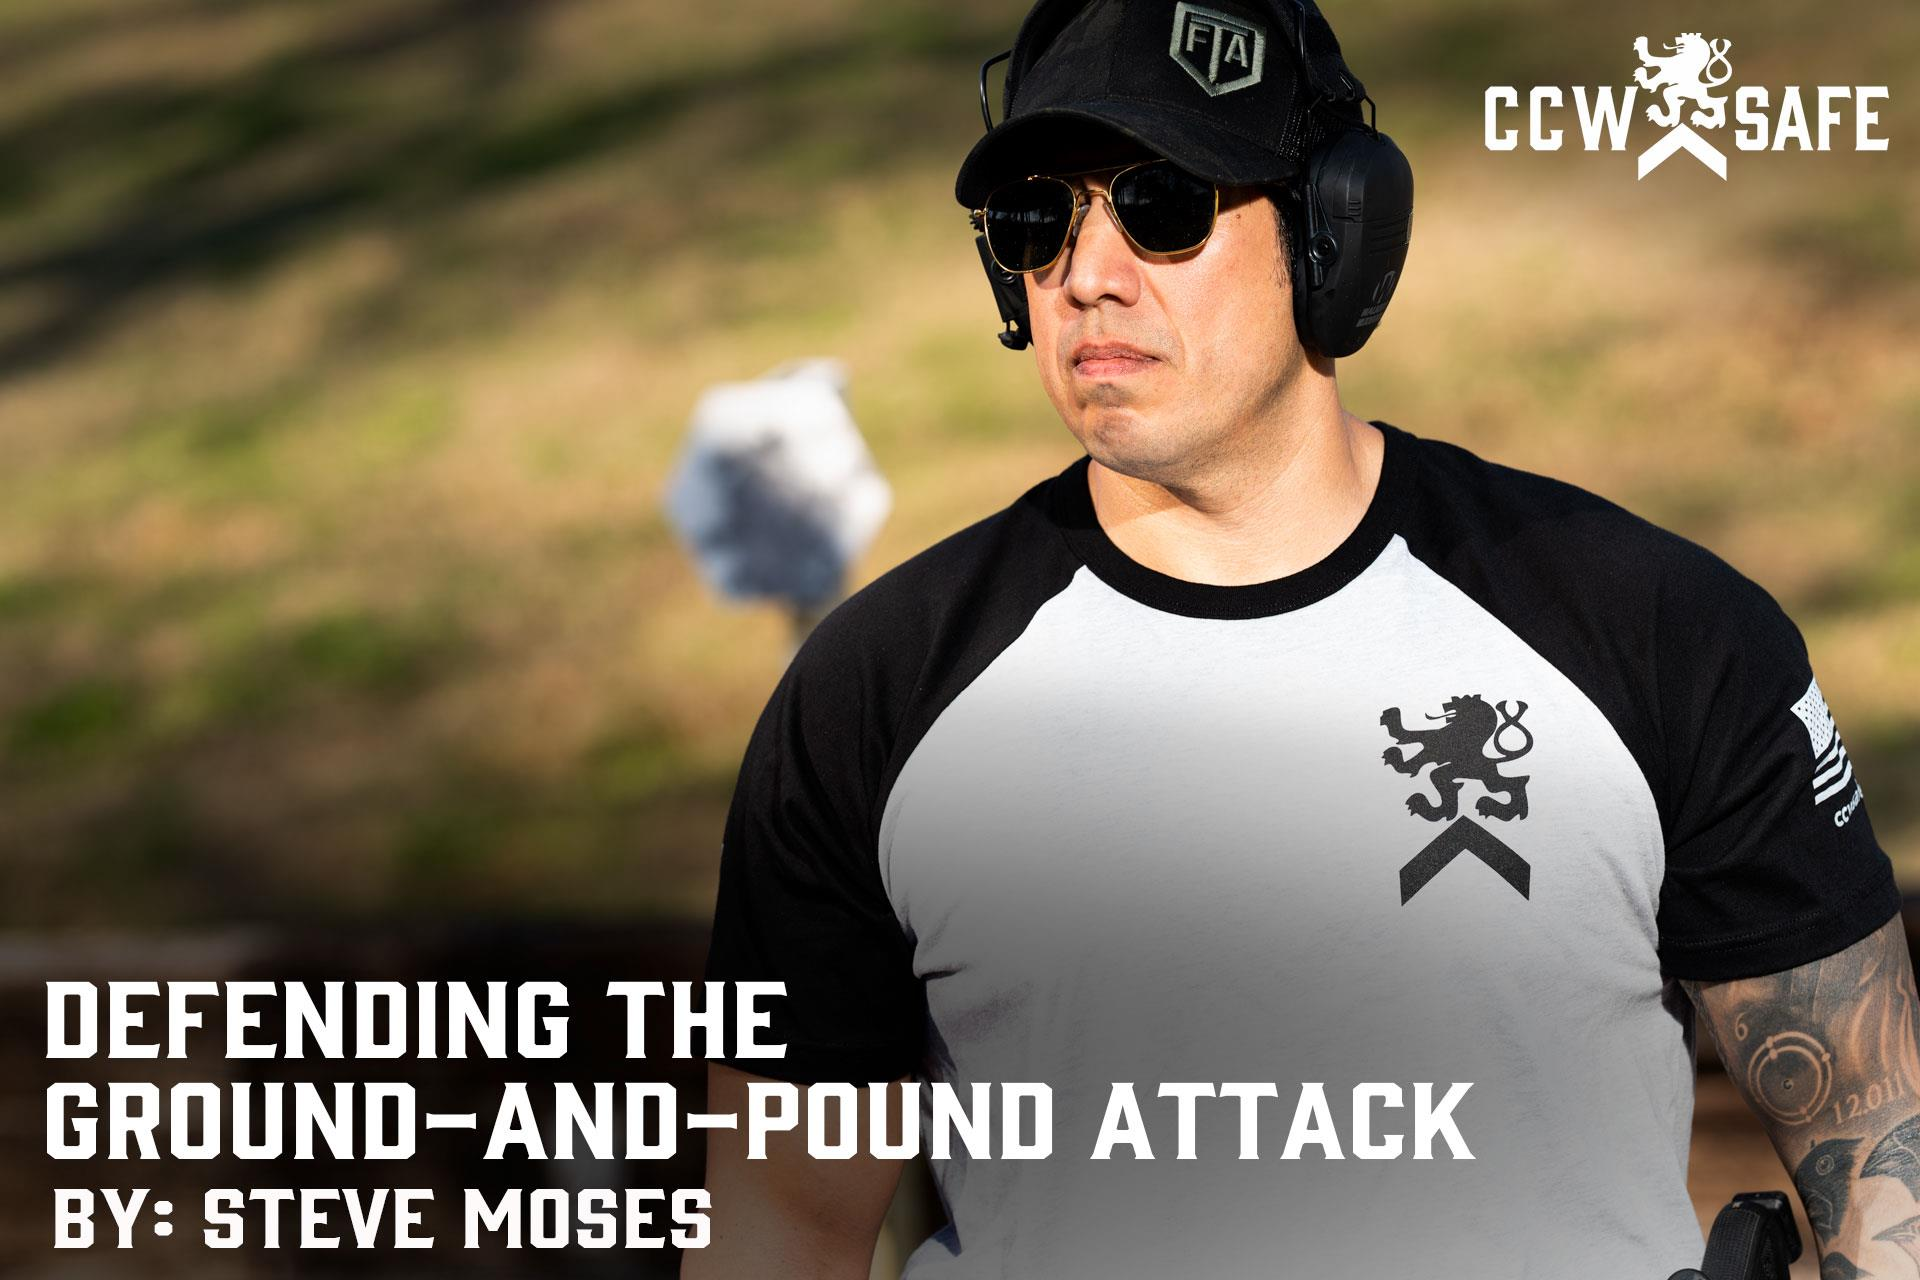 DEFENDING THE GROUND-AND-POUND ATTACK